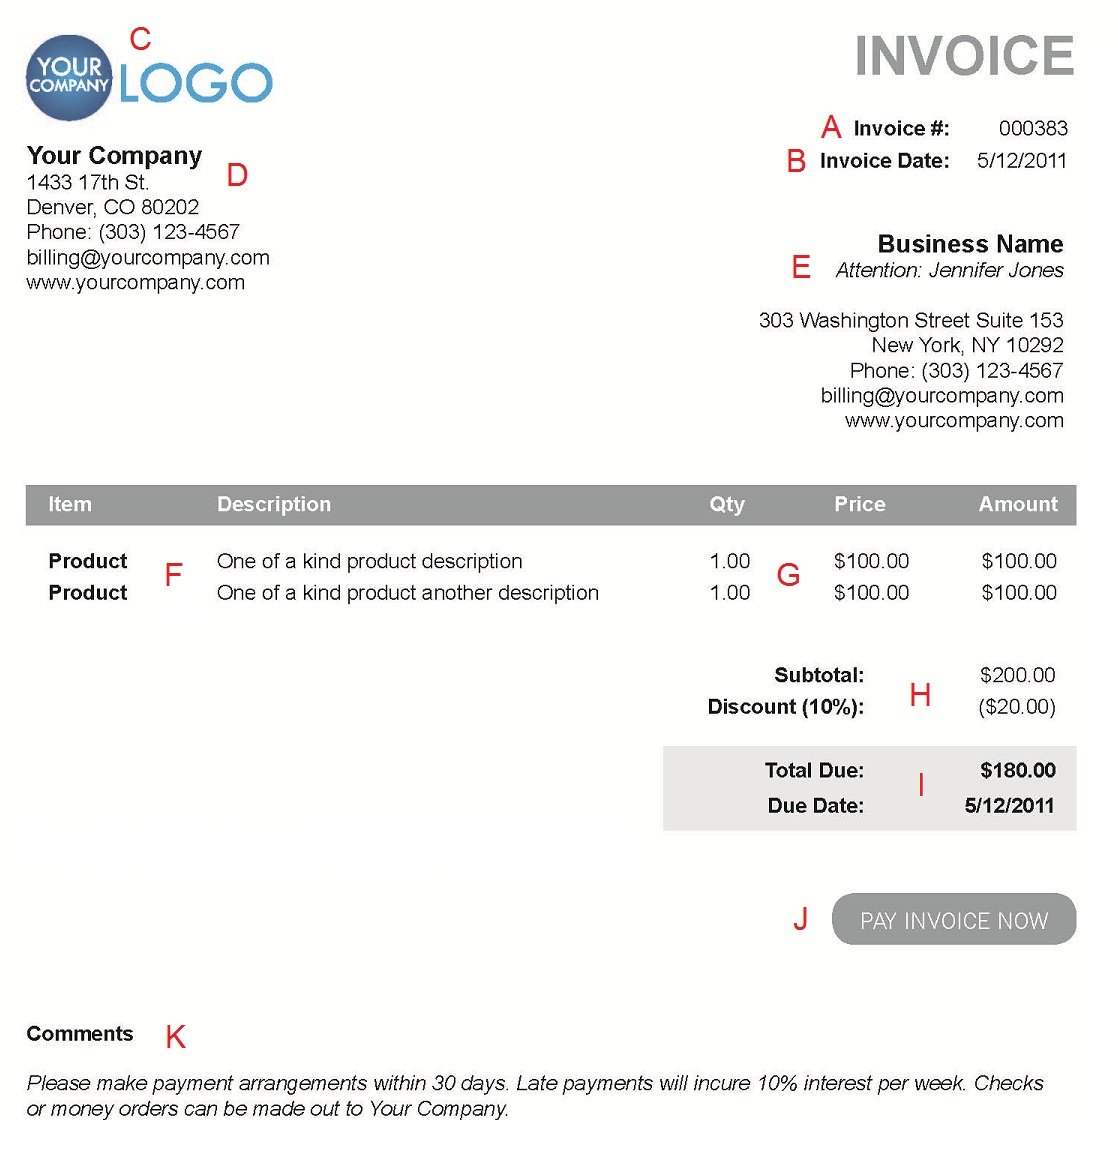 Picnictoimpeachus  Terrific The  Different Sections Of An Electronic Payment Invoice With Inspiring A  With Extraordinary Cloud Based Invoicing Also What To Include In An Invoice In Addition Shopify Invoice Generator And Fill In Invoice Template As Well As Filling Out An Invoice Additionally Freelance Designer Invoice From Paysimplecom With Picnictoimpeachus  Inspiring The  Different Sections Of An Electronic Payment Invoice With Extraordinary A  And Terrific Cloud Based Invoicing Also What To Include In An Invoice In Addition Shopify Invoice Generator From Paysimplecom